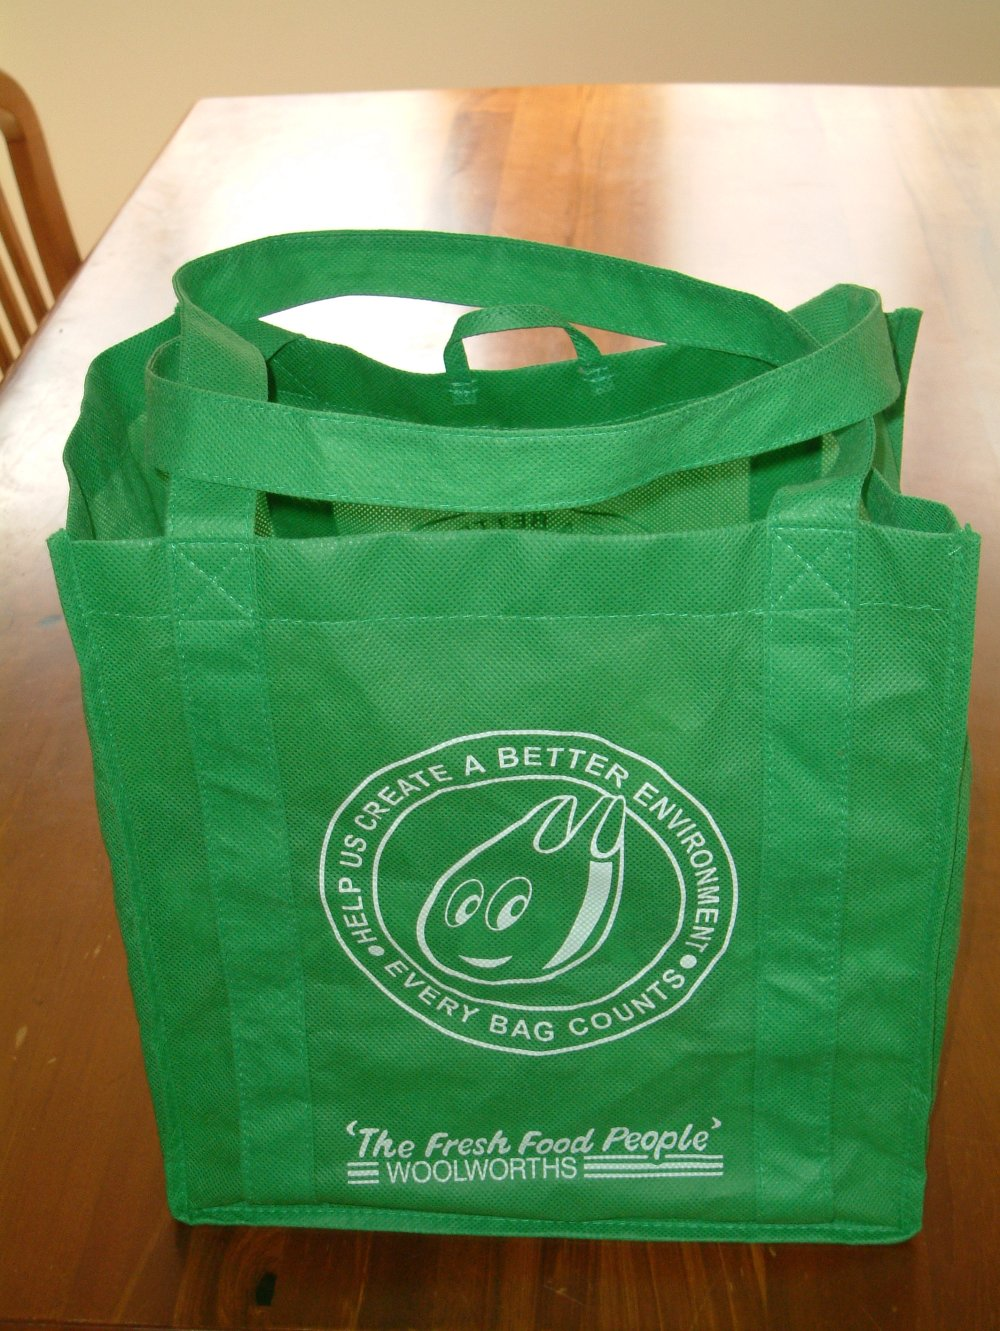 Green Bag, Inc. evaded customs payments